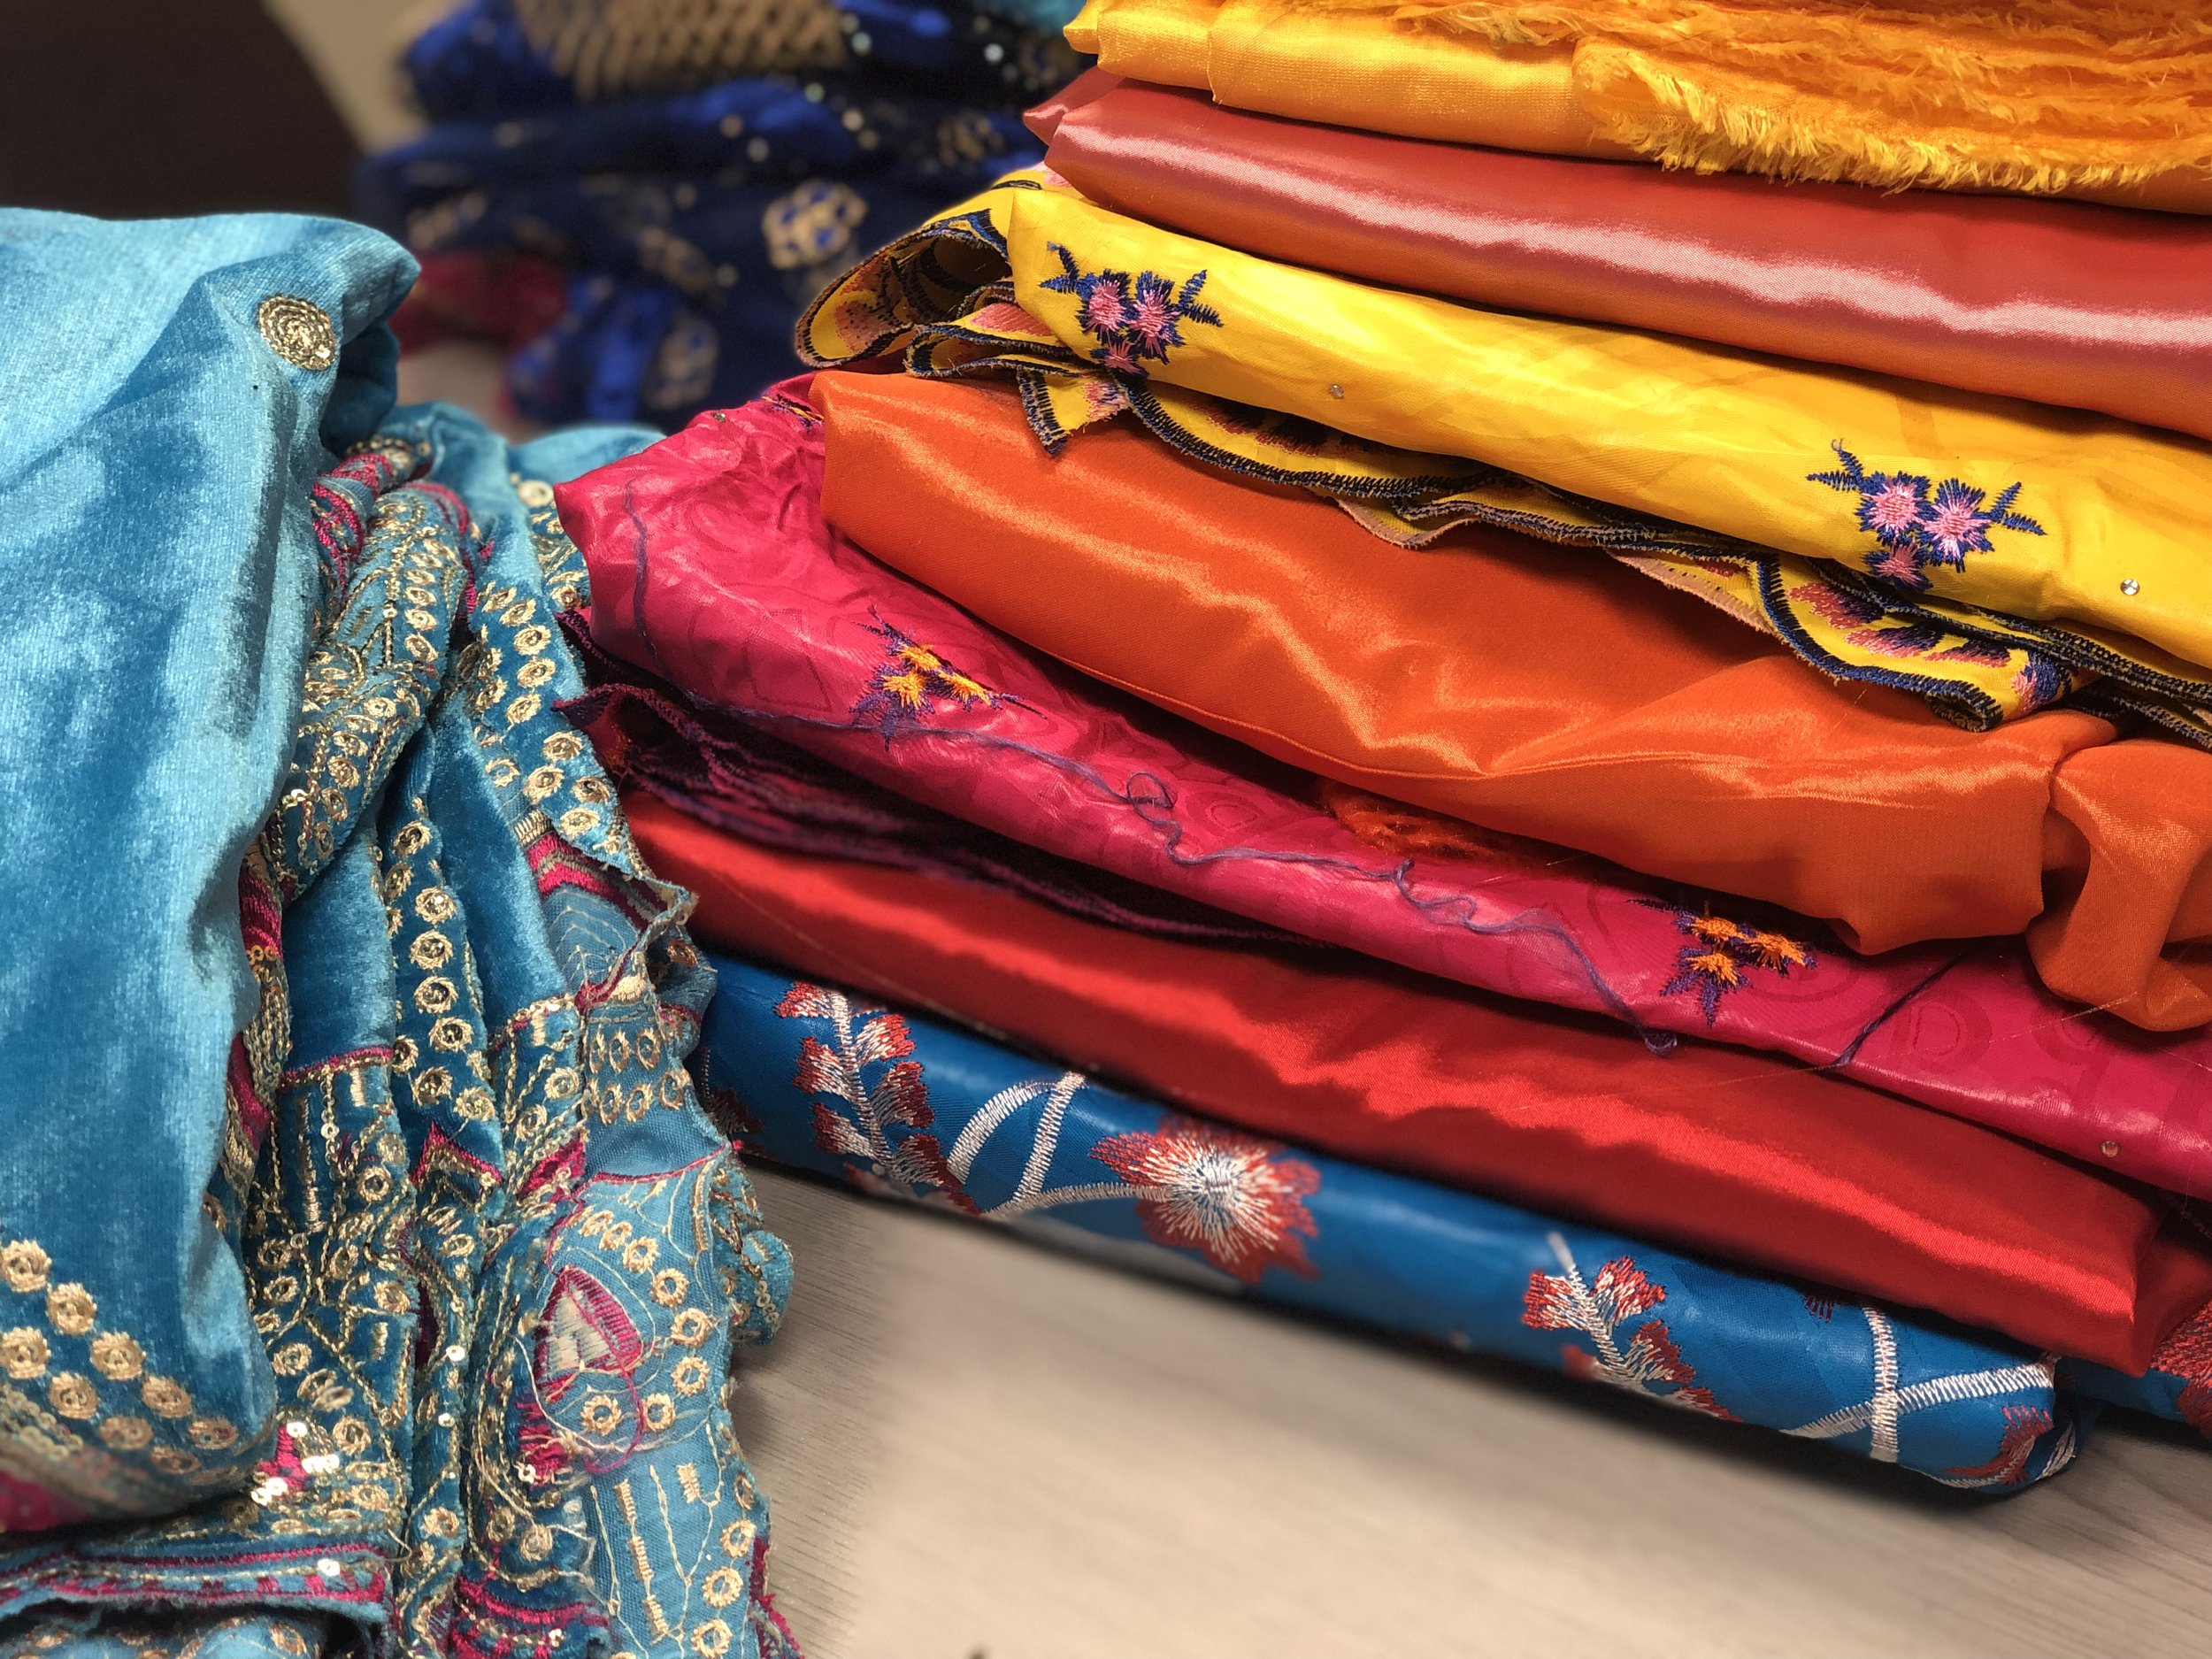 The fabrics are so colourful and vibrant. We can't wait to see them made up into the costumes.